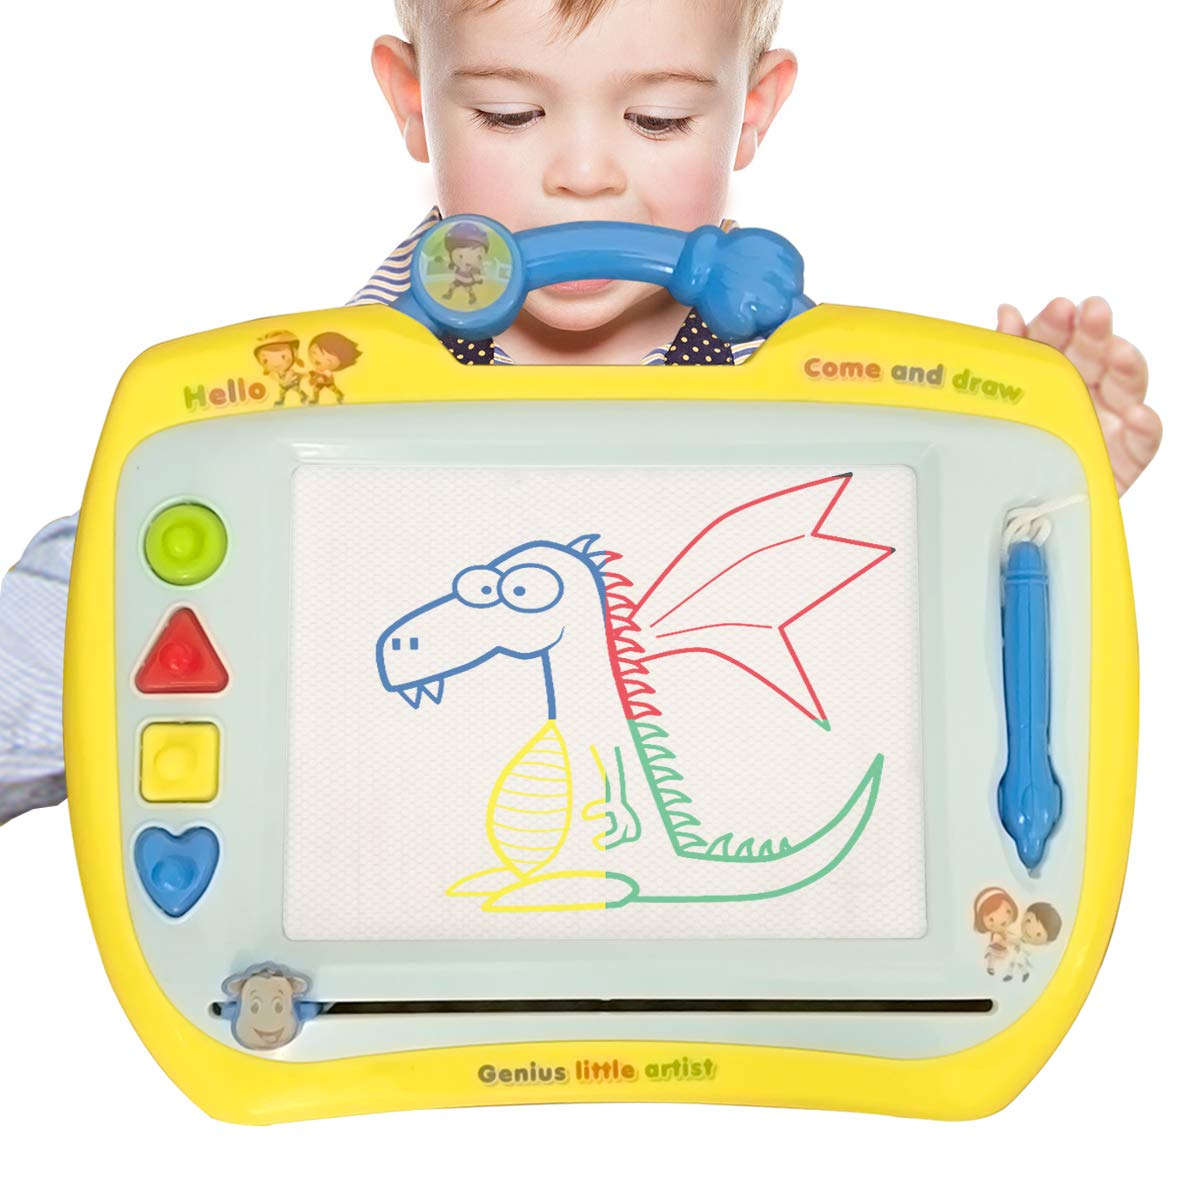 DIONRS Large Magnetic Drawing Board for Kids and Toddlers Erasable Perfect Size for Travel or Home with Bonus Magic Water Mat 4 Colors 13 x 16 Inches Convenient Handle and Pen Attached